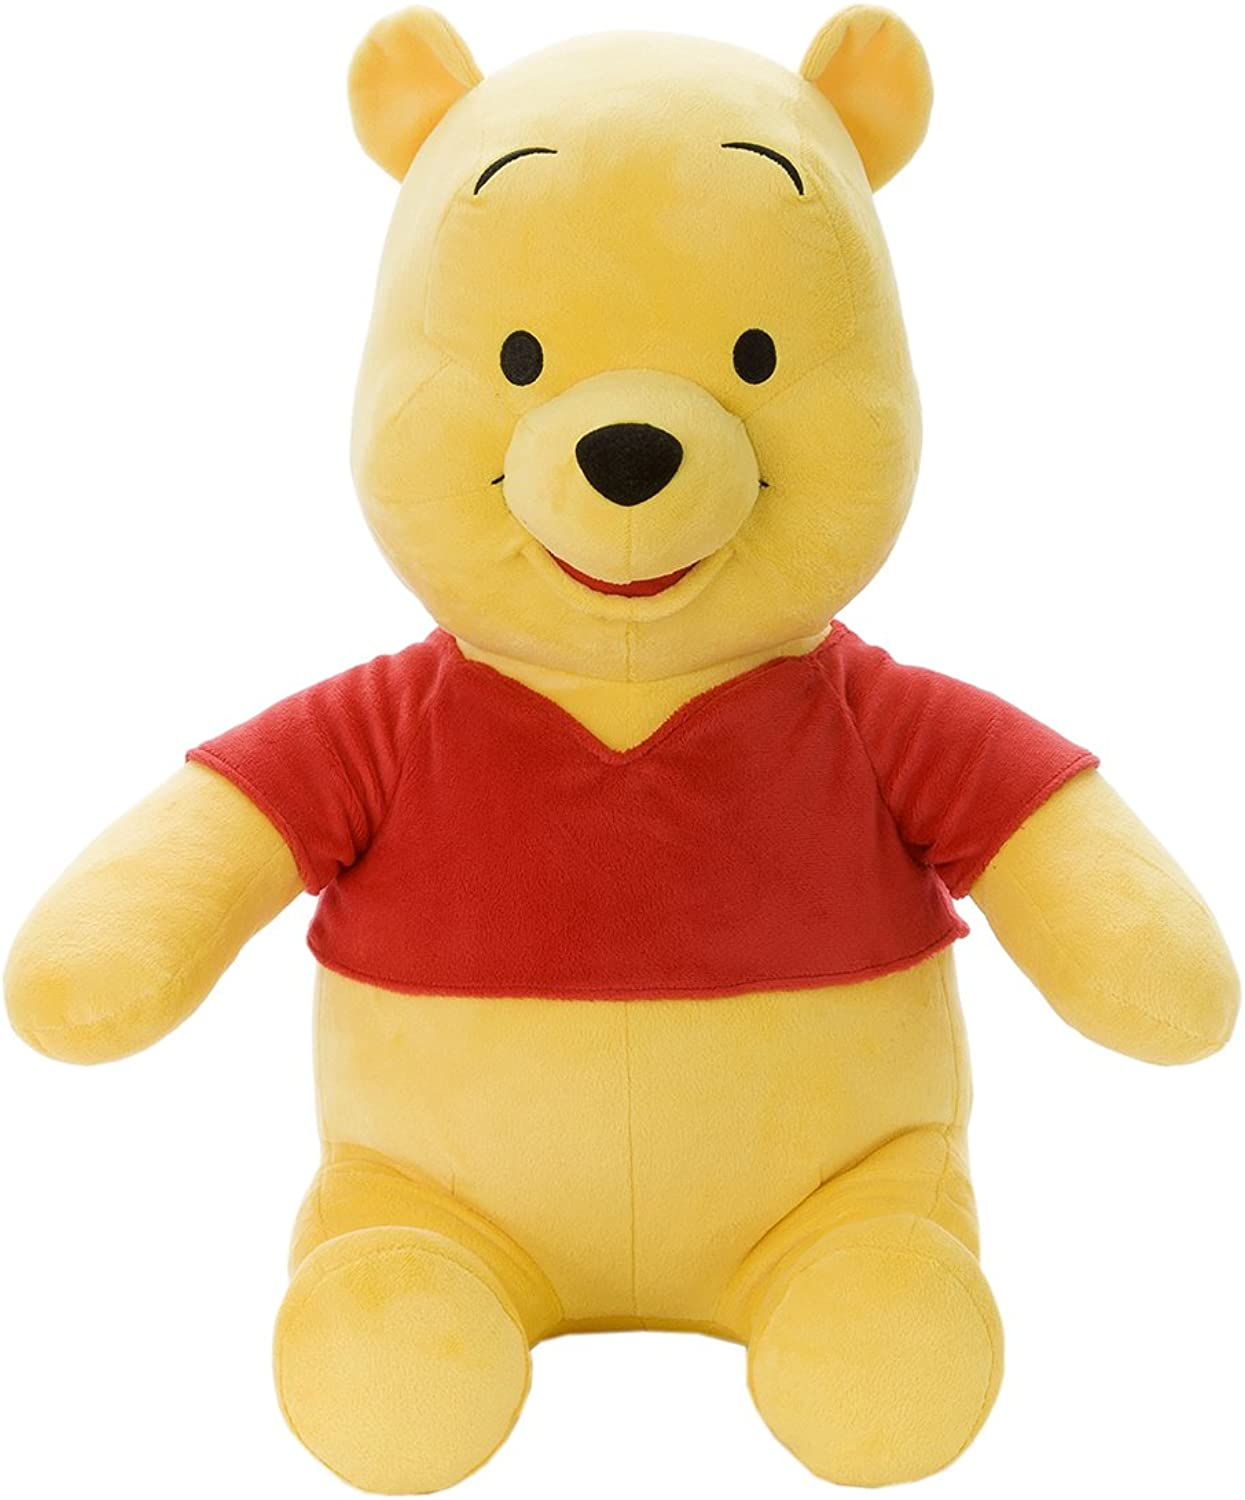 Disney Winnie the basic stuffed bear L (japan import)